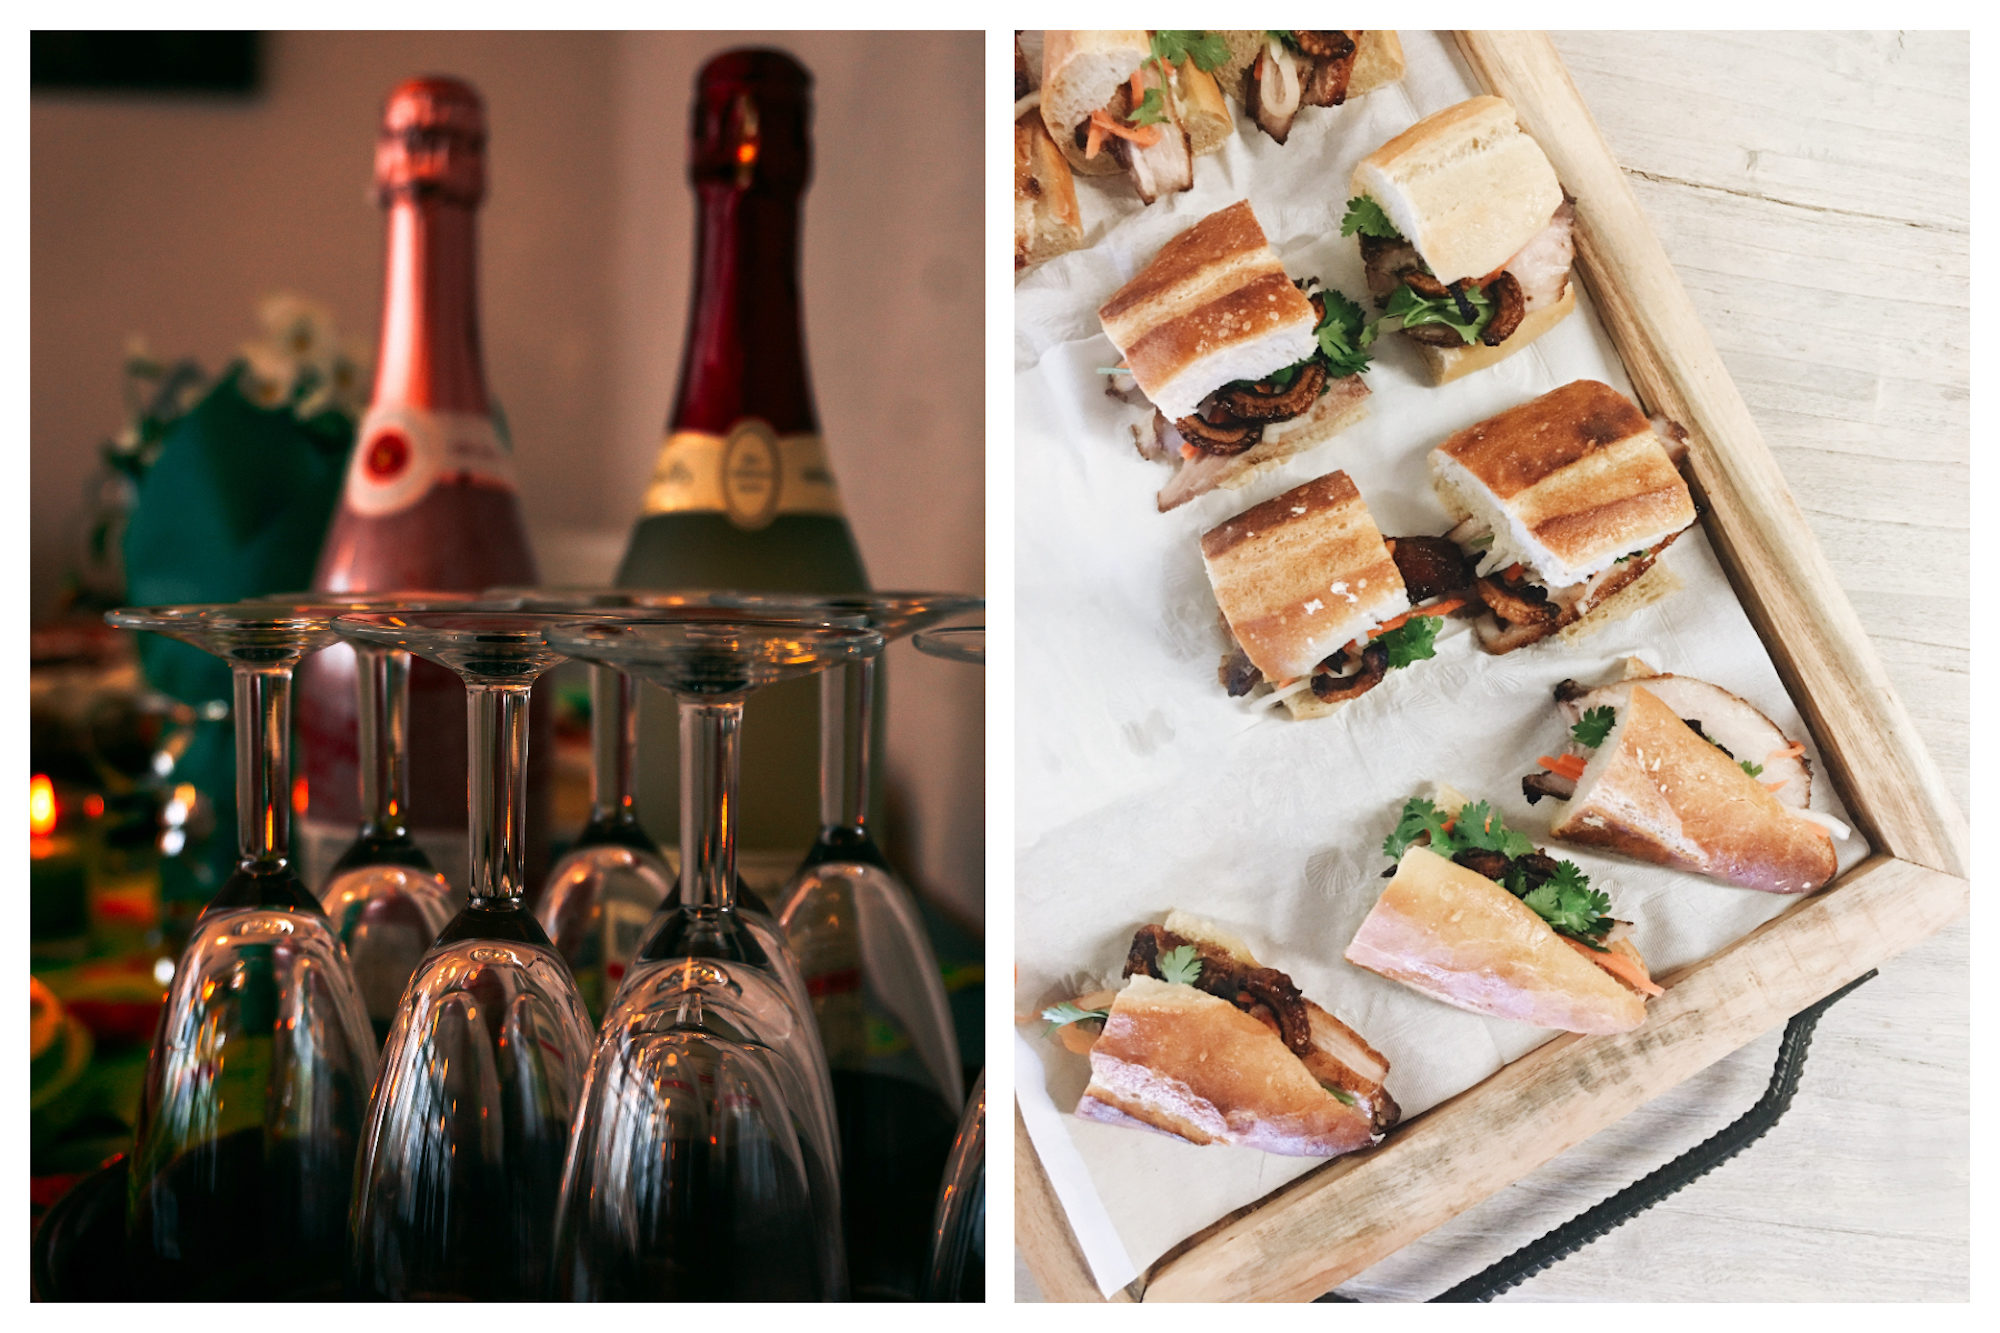 Two champagne bottles and glasses waiting to be filled for New Year's Eve (left). Baguette canapés on a tray (right).